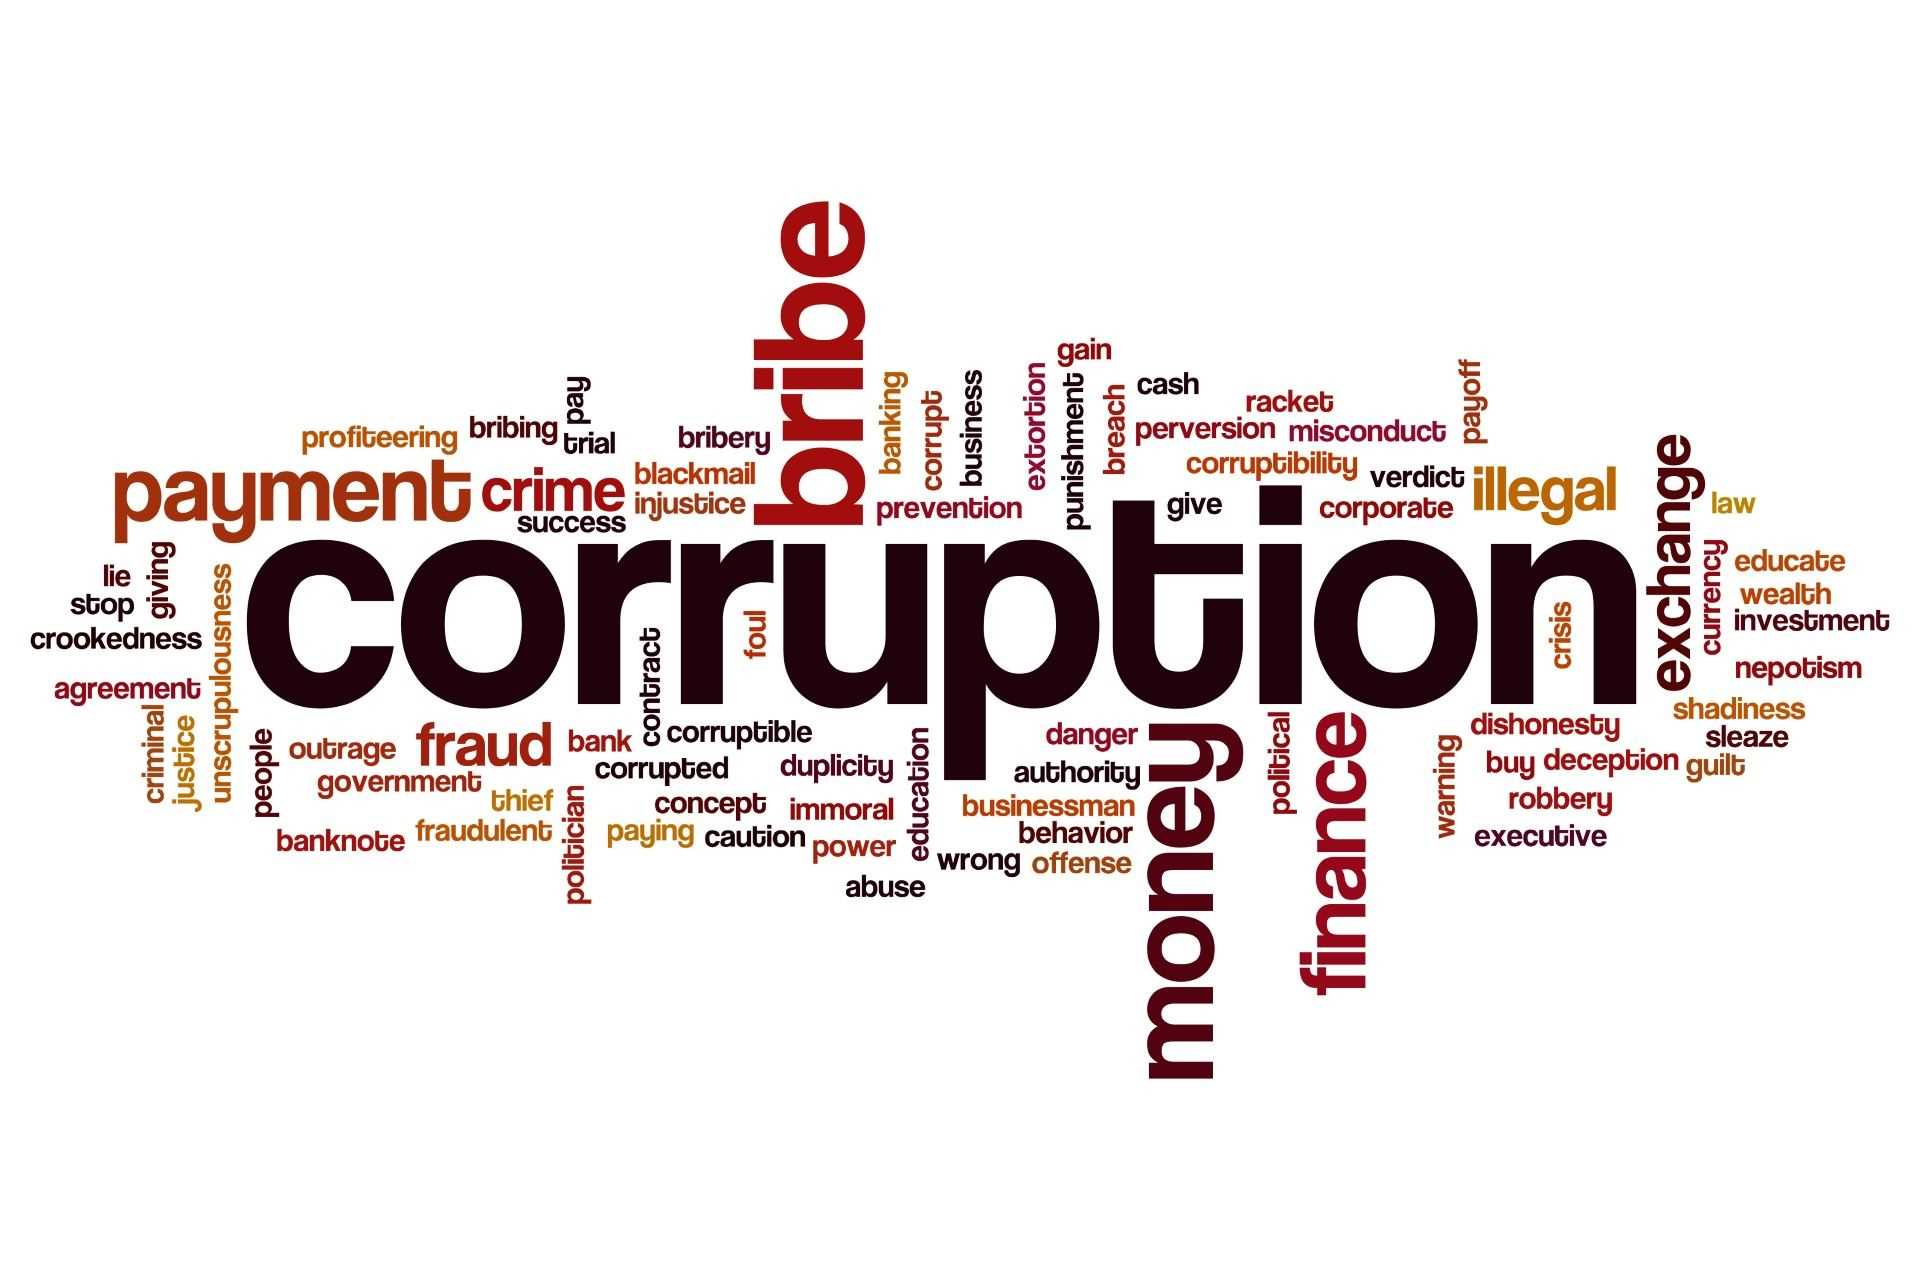 the problem of corruption in our society Money and corruption have seeped so far into our media system that people can with a straight face assert that scientists aren't sure human carbon emissions are causing global warming fox cable news is among the more corrupt institutions in american society, purveying outright lies for the benefit of the billionaire class.